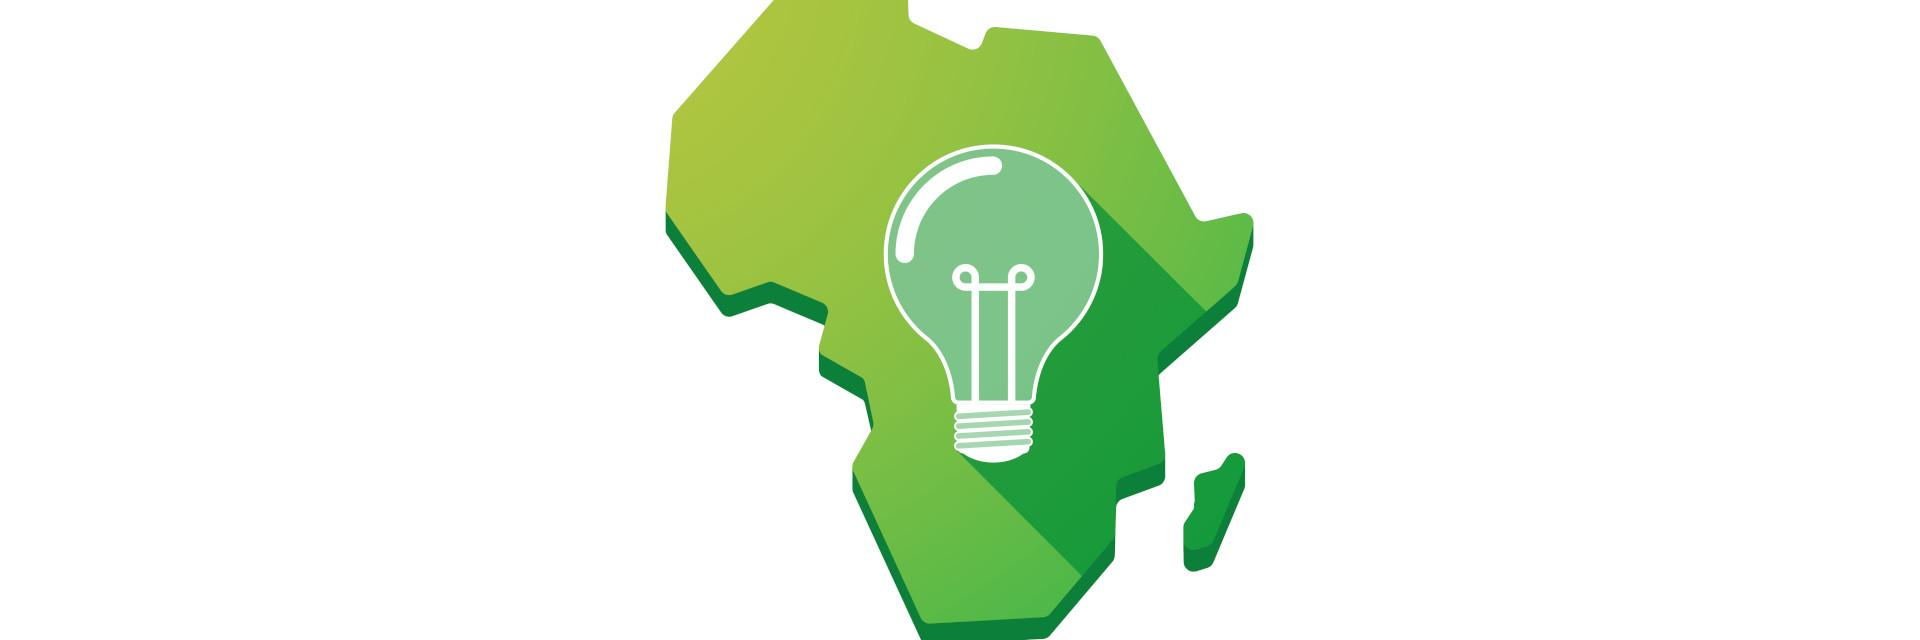 ARFSD2021: Africa can be resilient and green